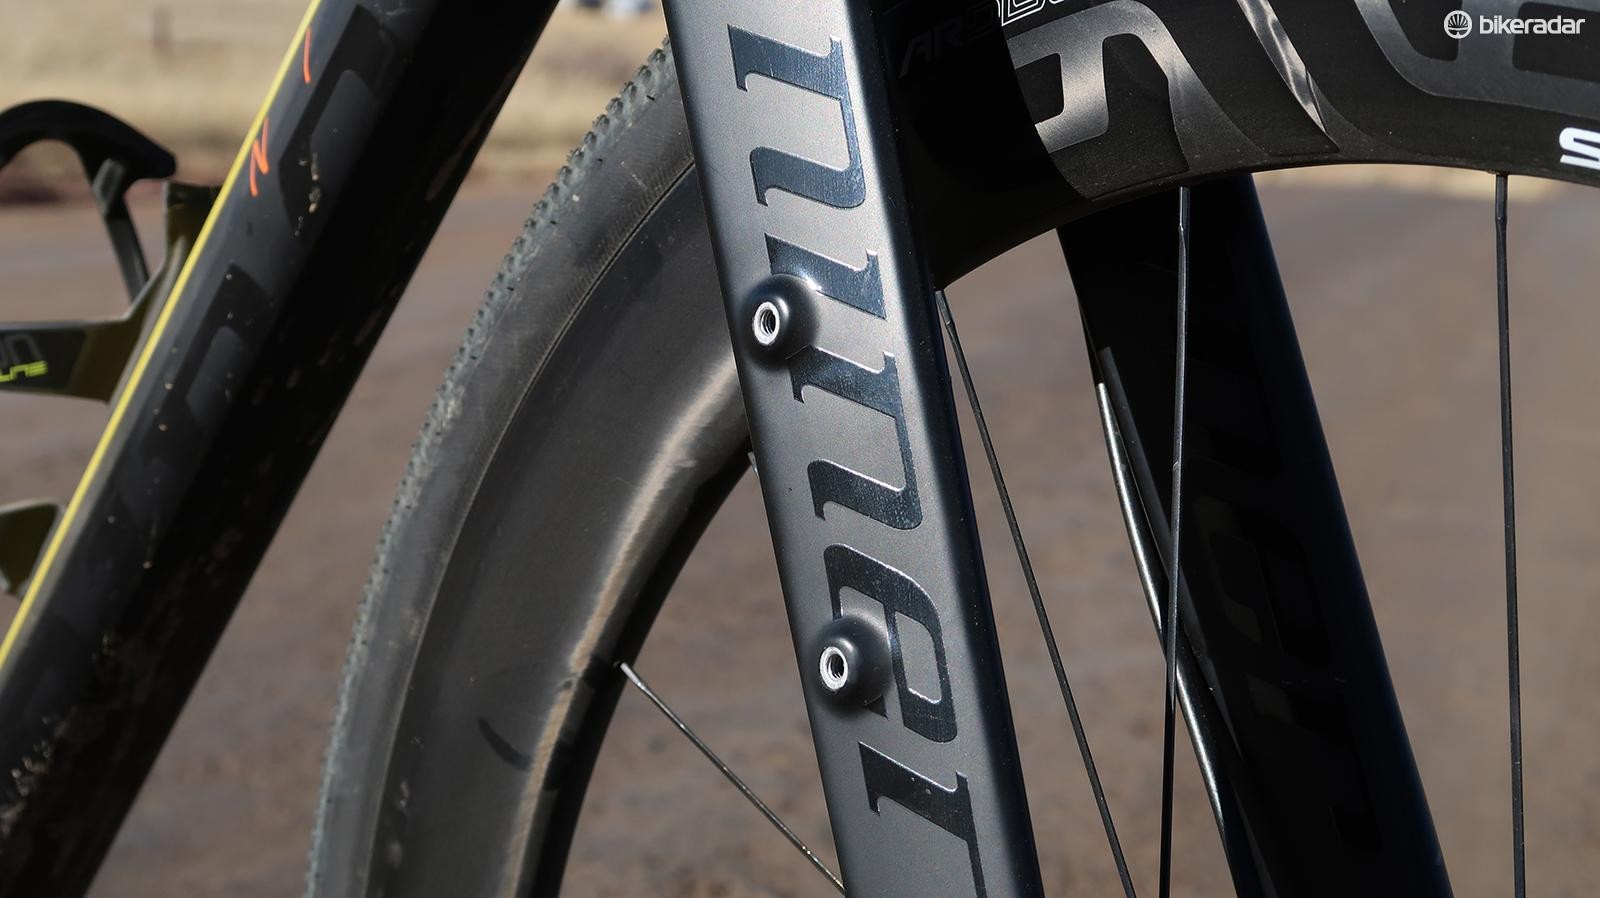 The RLT 9 RDO has a full carbon fork with eyelets for additional water bottles or cargo cages, neither of which were needed for this short race